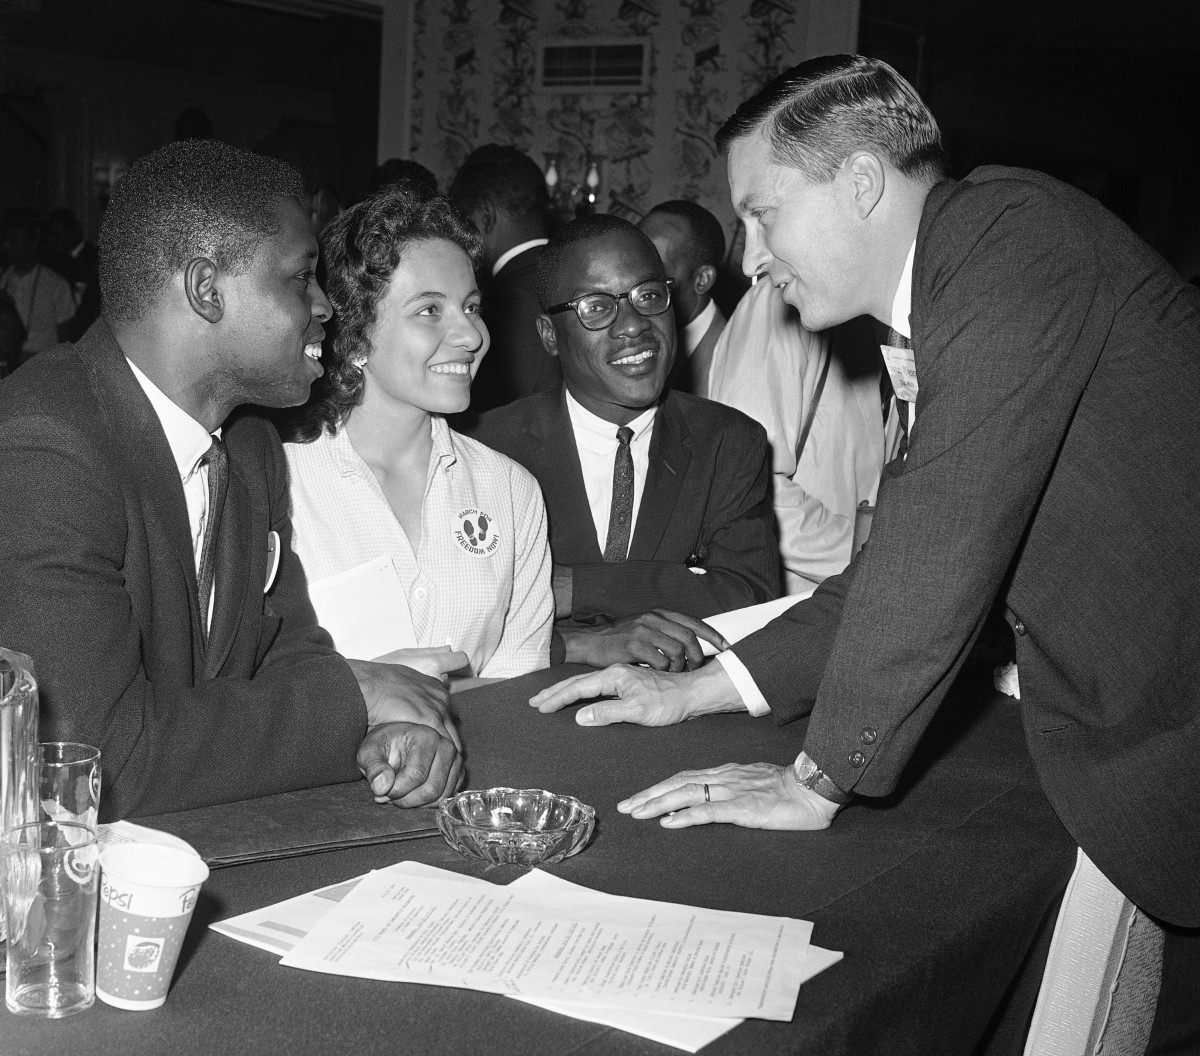 Charles H. Percy, right, chairman of the platform committee of the Republican Party, speaking with Walter Bradford, Diane Nash, and Bernard Lee on July 20, 1960.